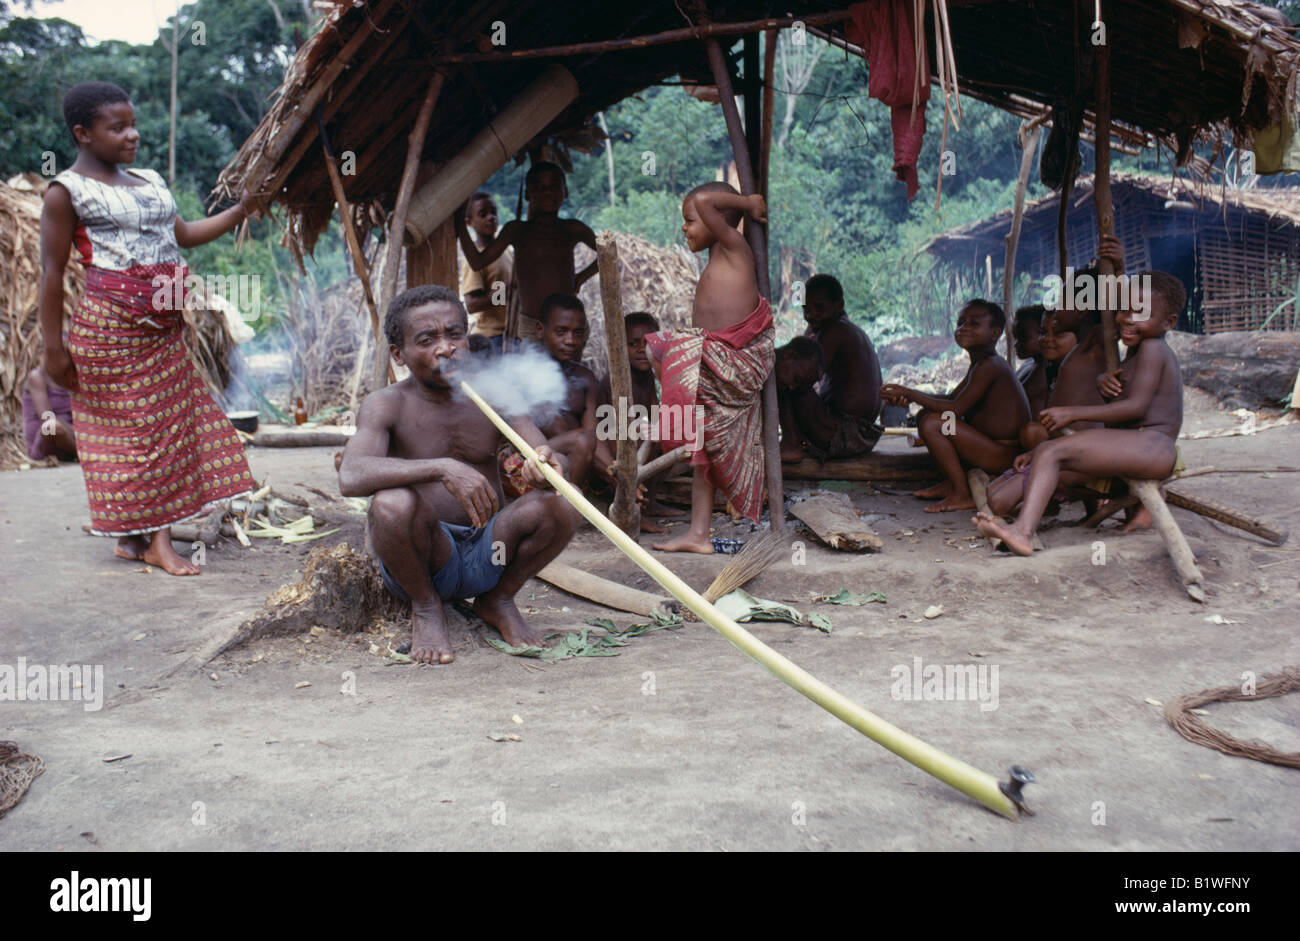 Across six countries in central africa: Congo Central Africa Ituri Forest Pygmy Group Of Nomadic Forest Dwelling Twa People With Man Smoking Hallucinogens In Long Pipe Stock Photo Alamy